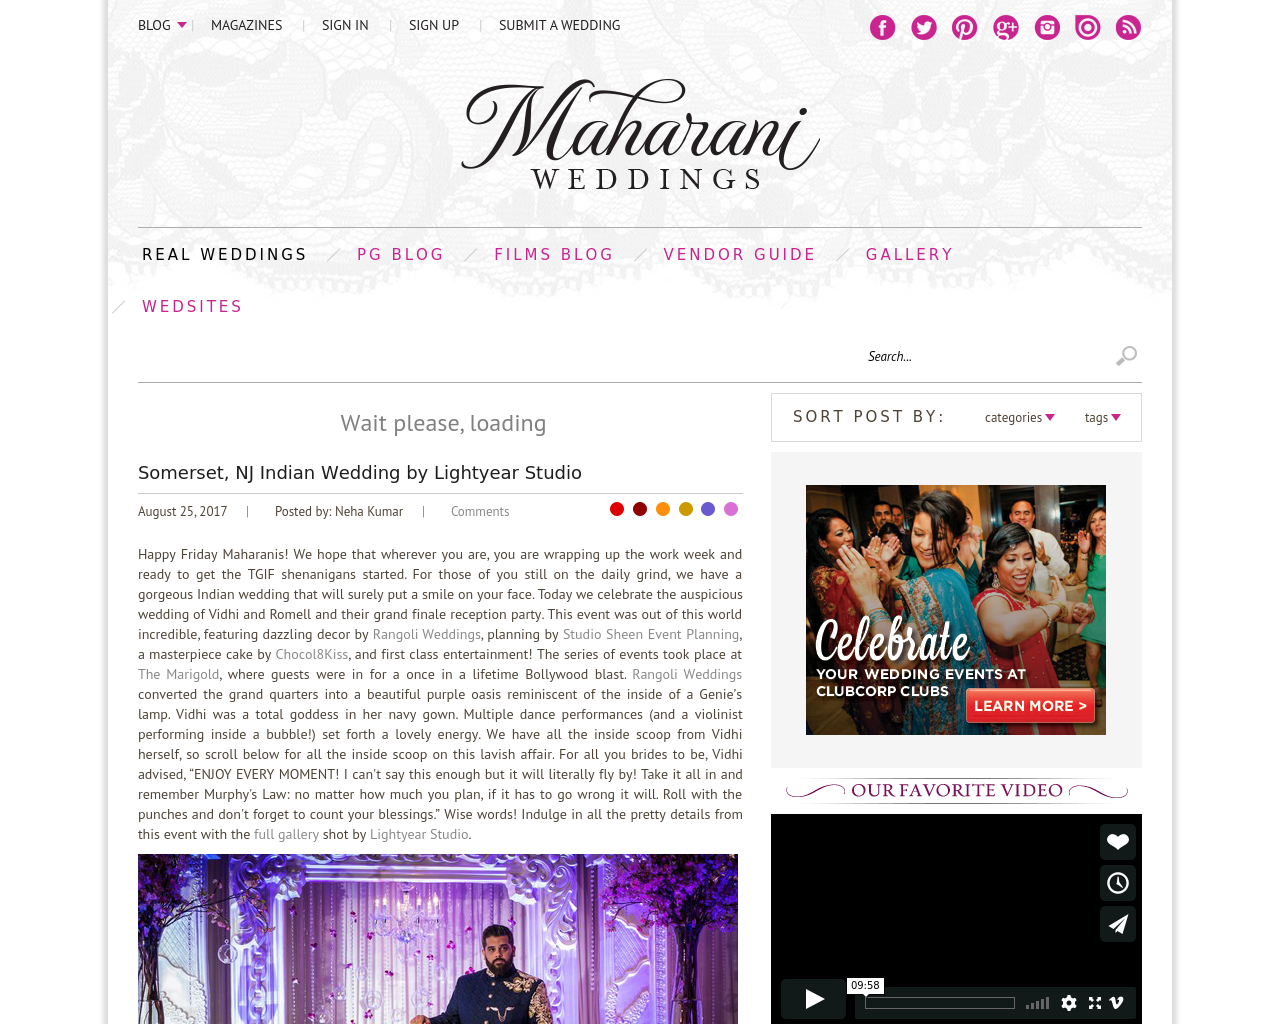 Maharani-Weddings-Advertising-Reviews-Pricing